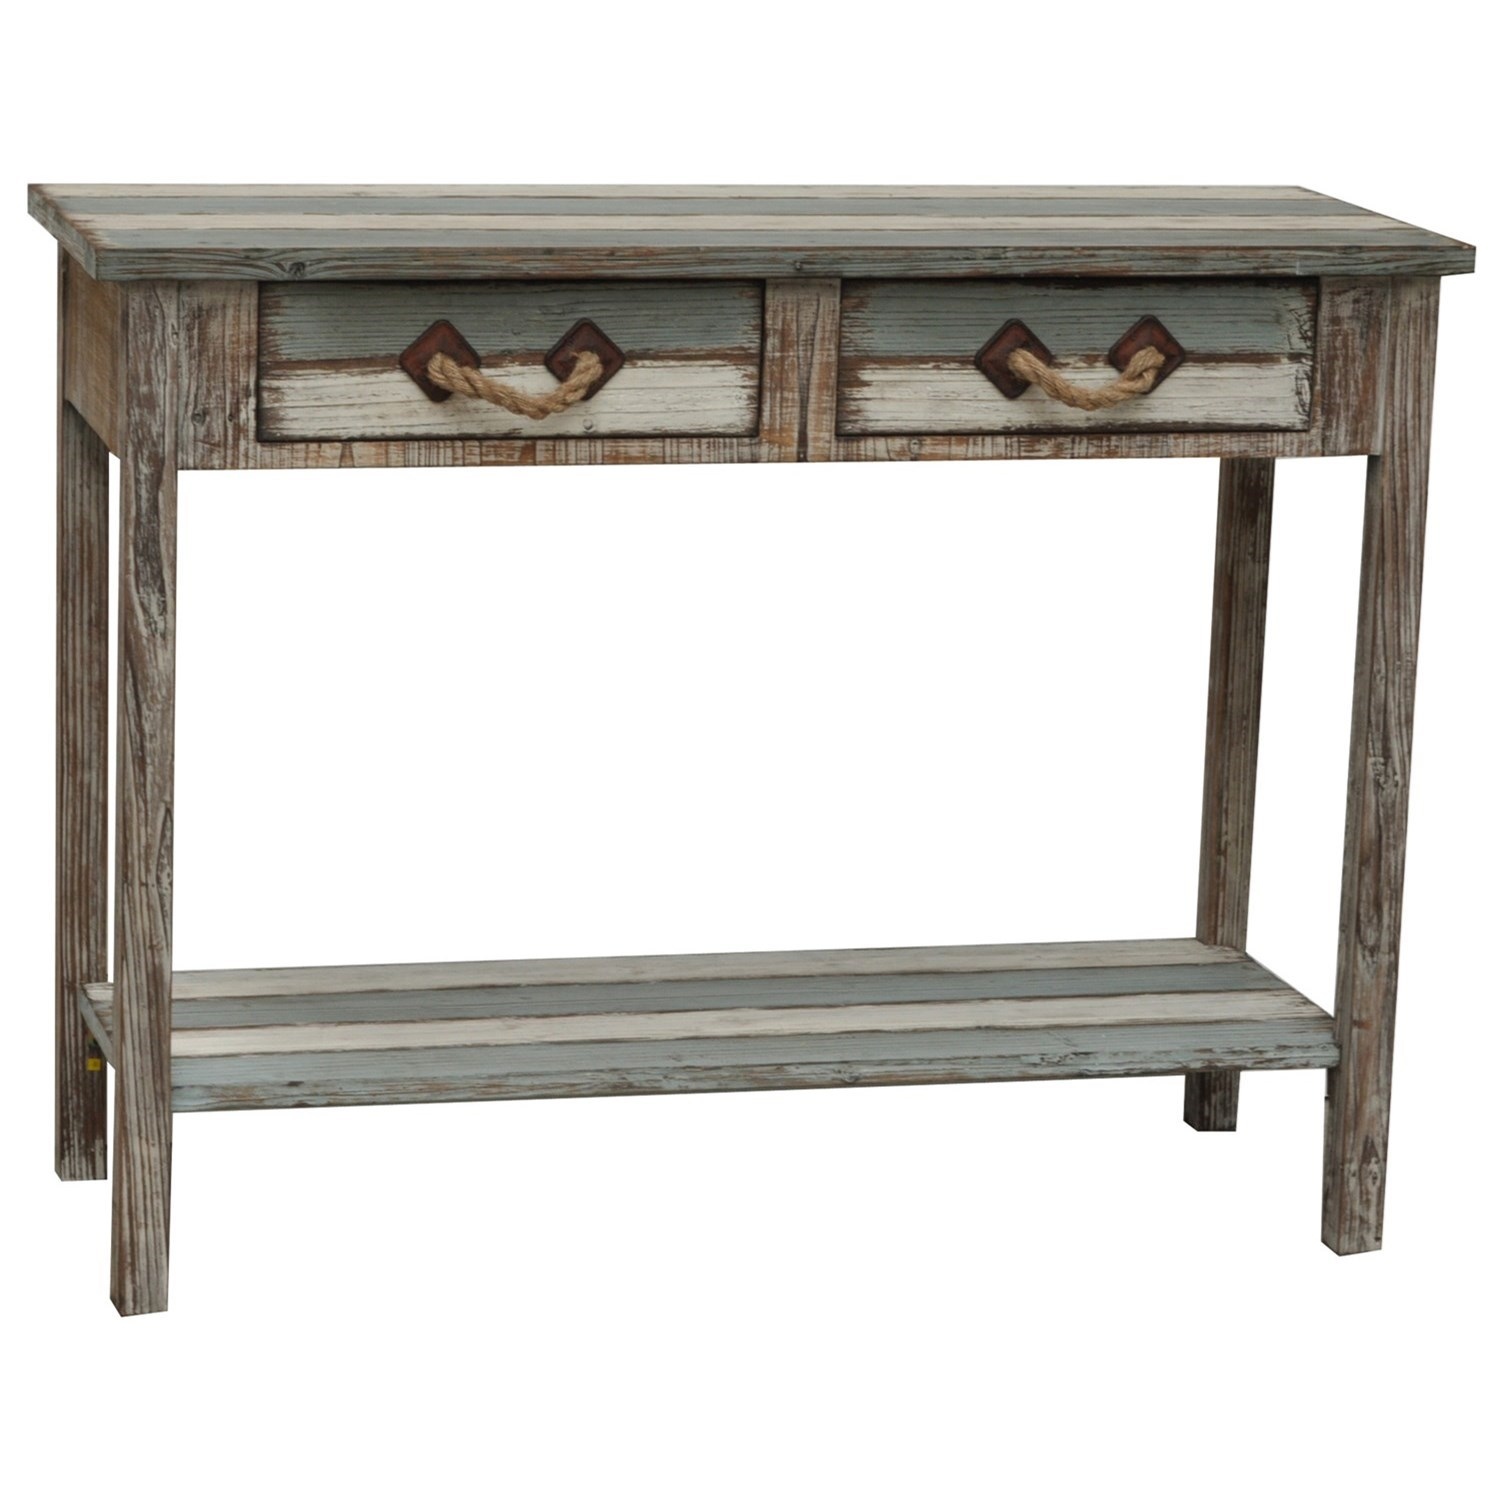 Accent Furniture Nantucket Wood Console by Crestview Collection at Factory Direct Furniture